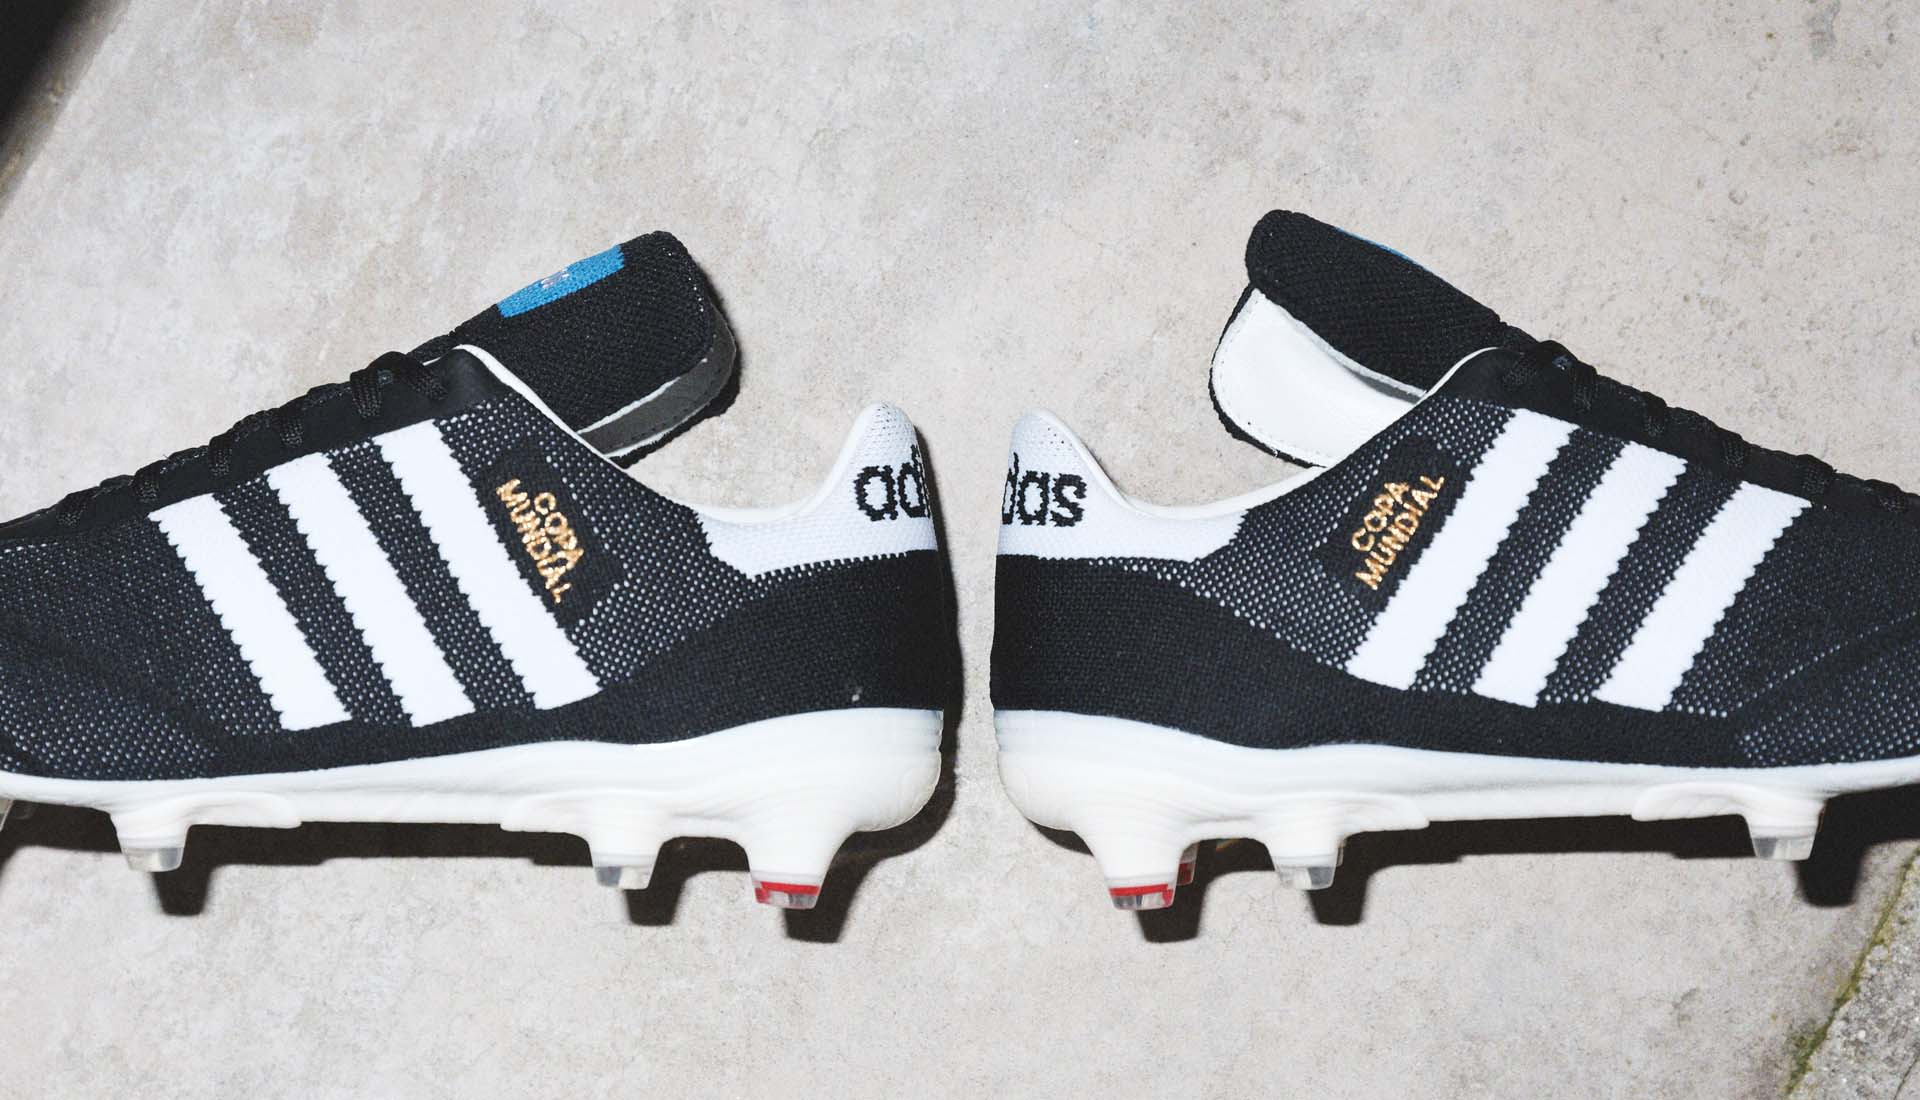 0cd47584663 adidas Launch The COPA70 to Celebrate 70th Anniversary - SoccerBible